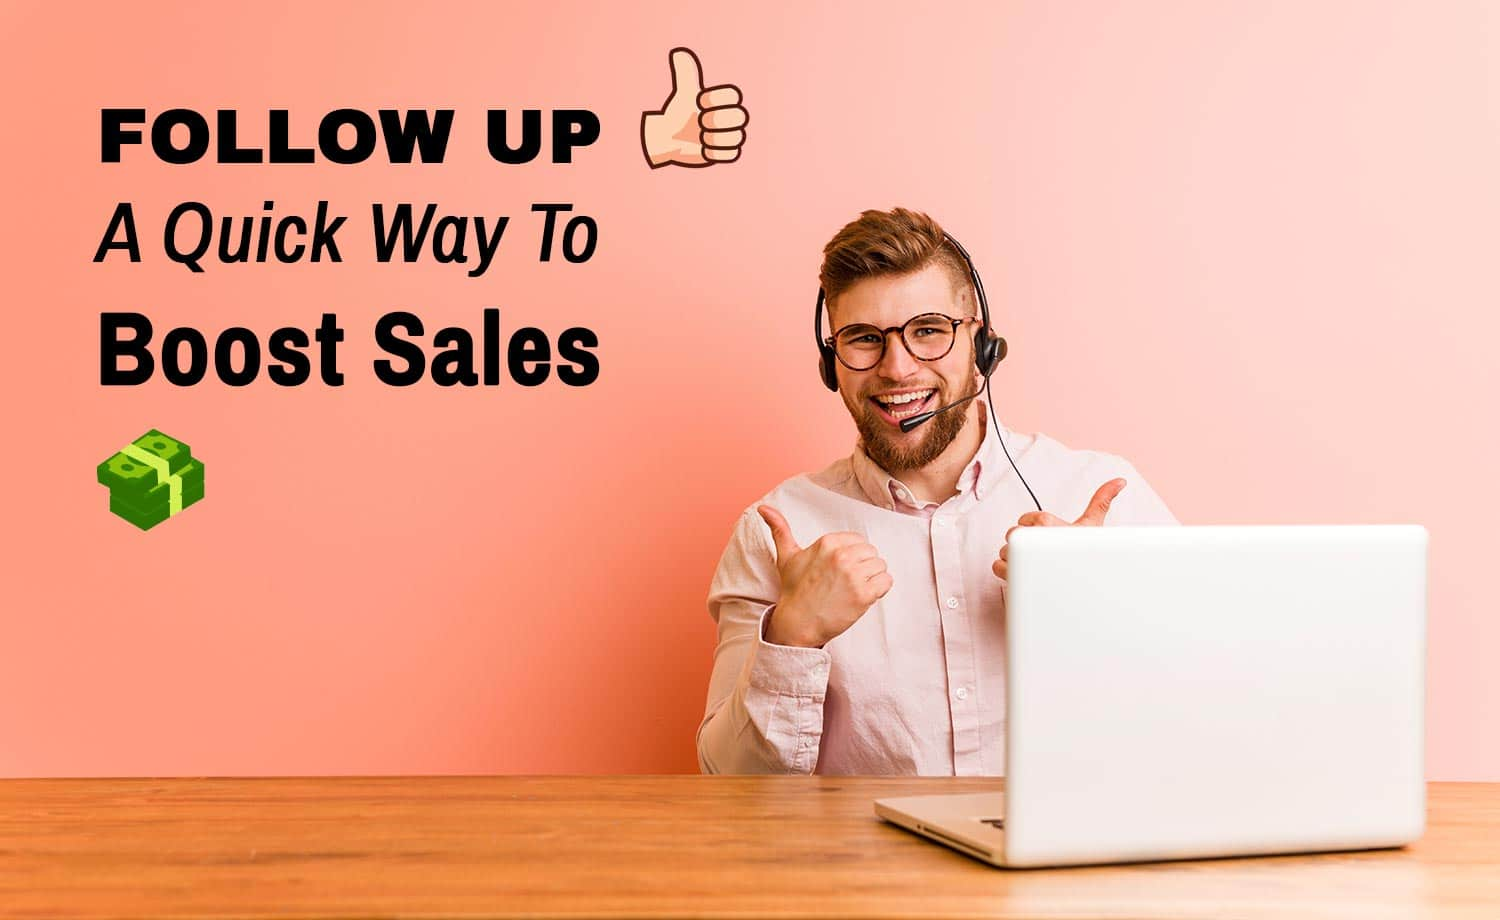 Follow up to boost sales!